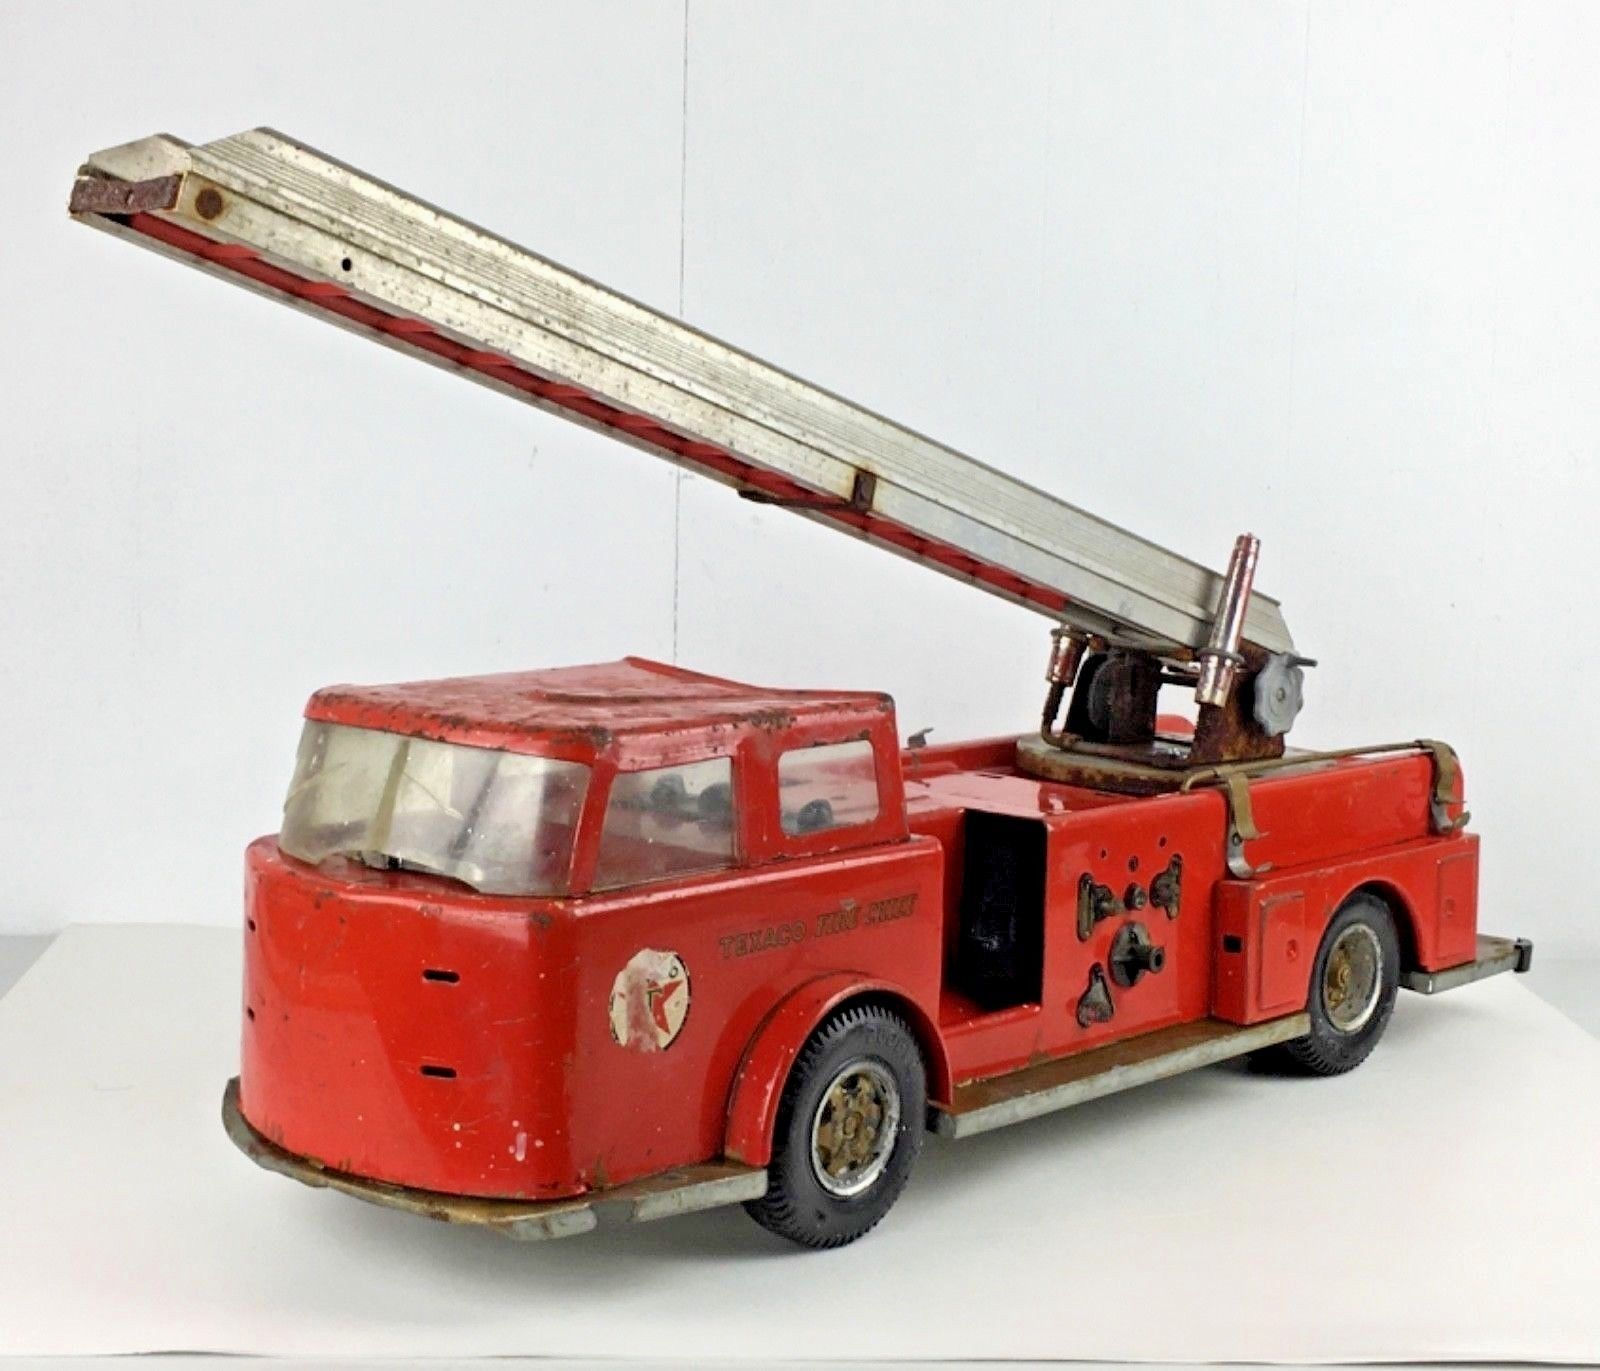 Texaco Fire Chief Fire Engine Truck Metal Toy Red Ladder Advertising Vtg Gift